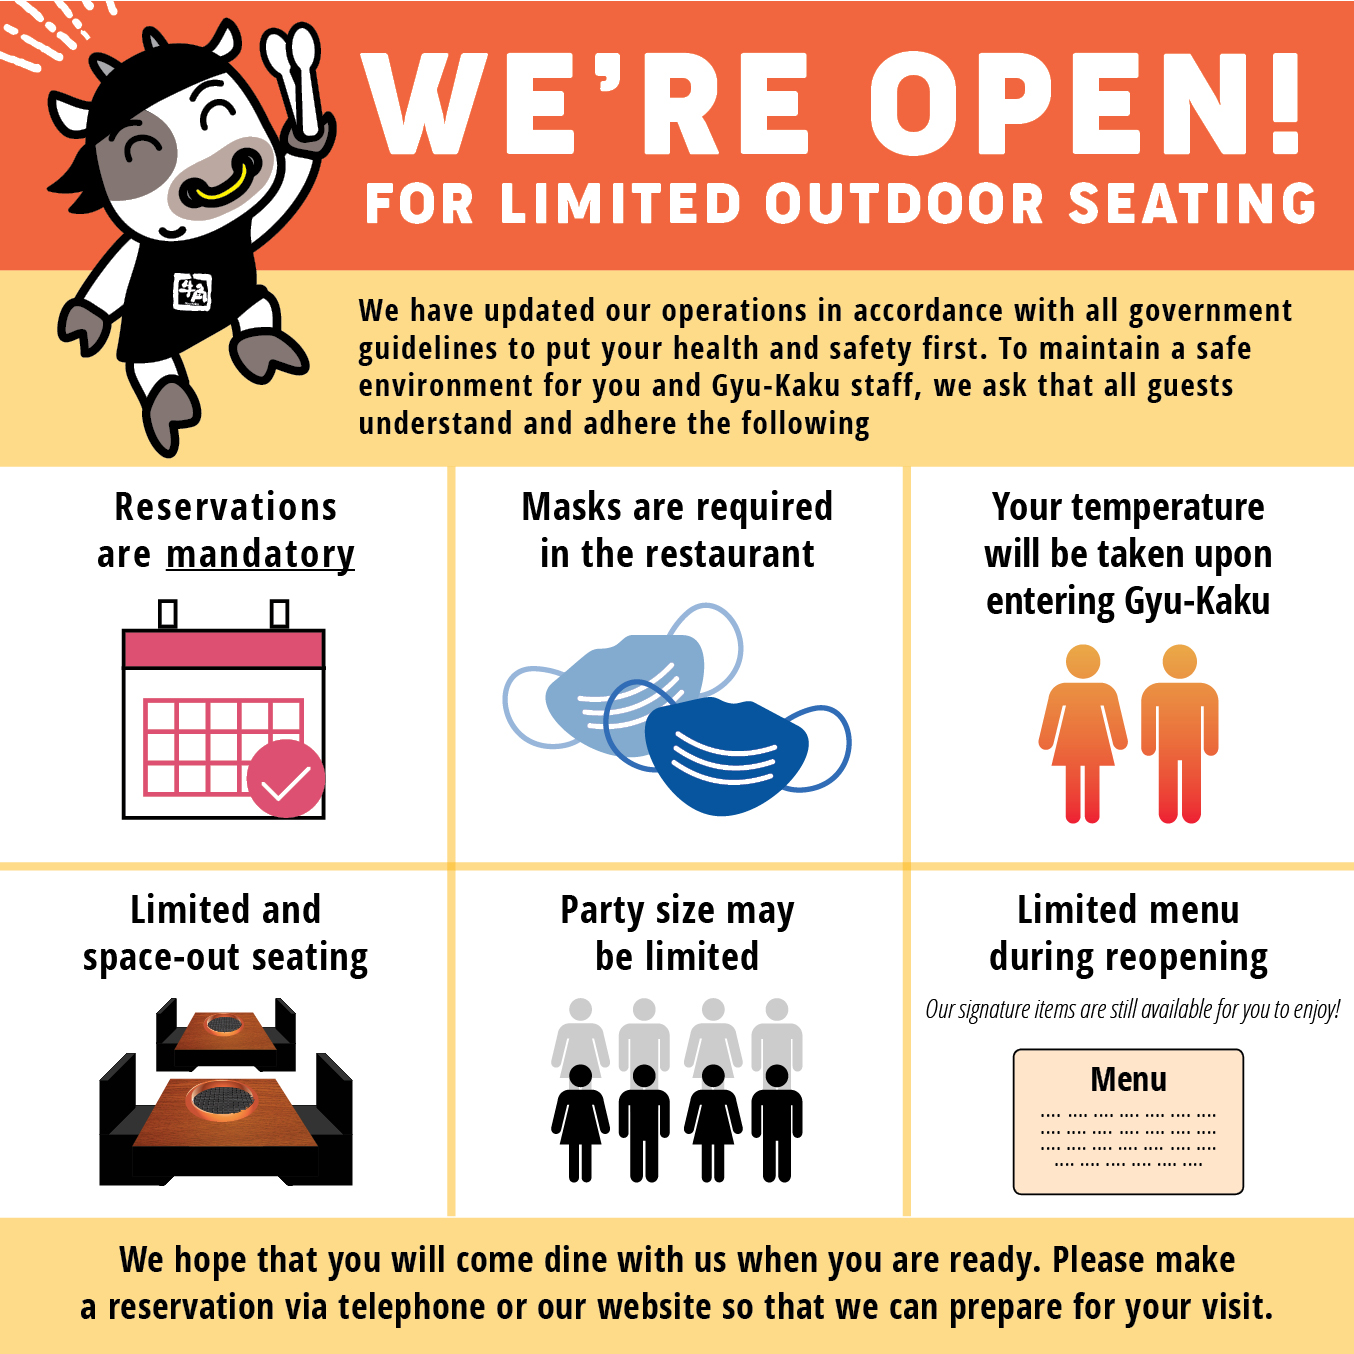 Open for Outdoor Seating